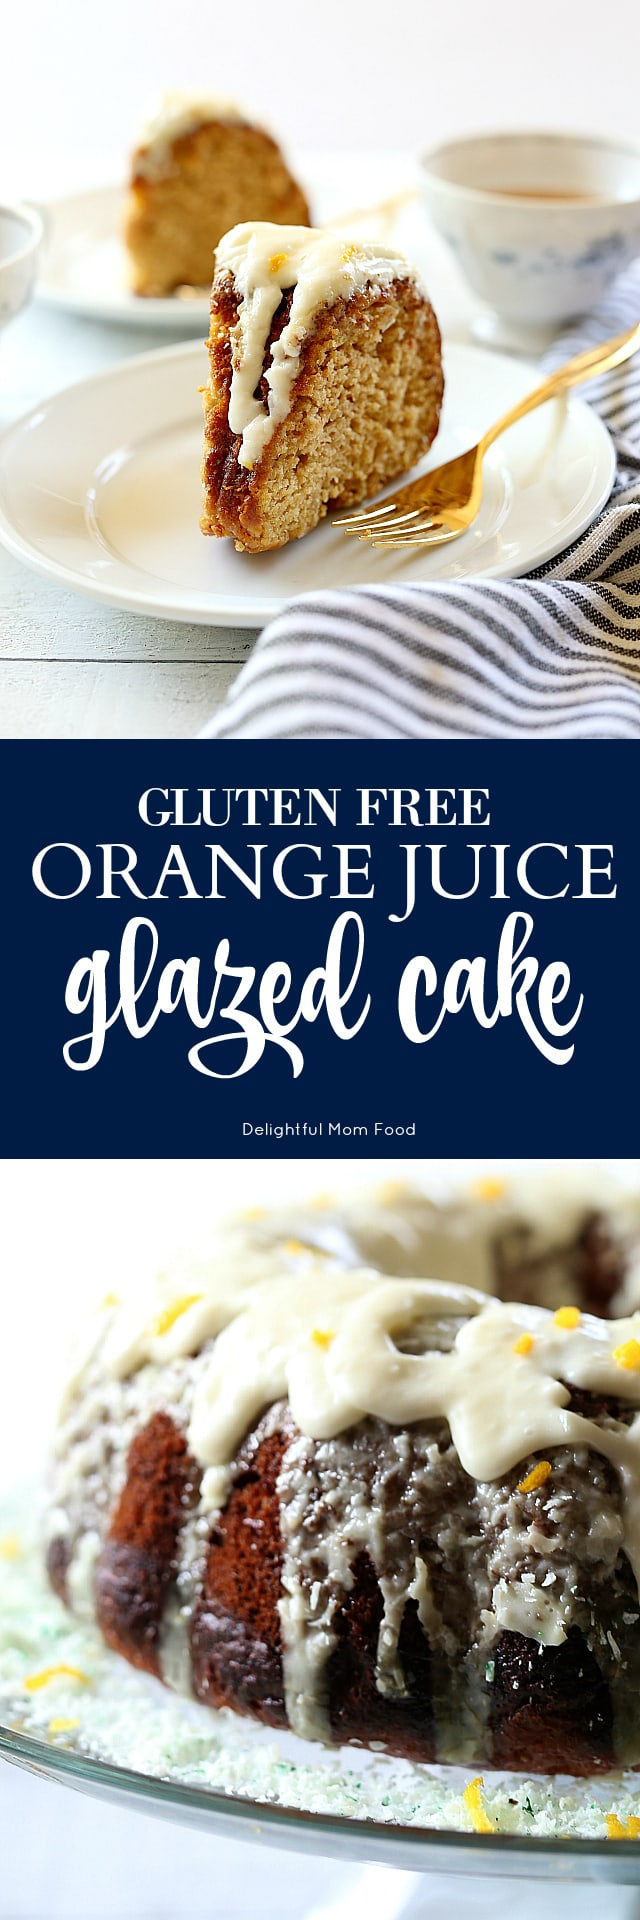 Gluten Free Orange Juice Glazed Cake Recipe